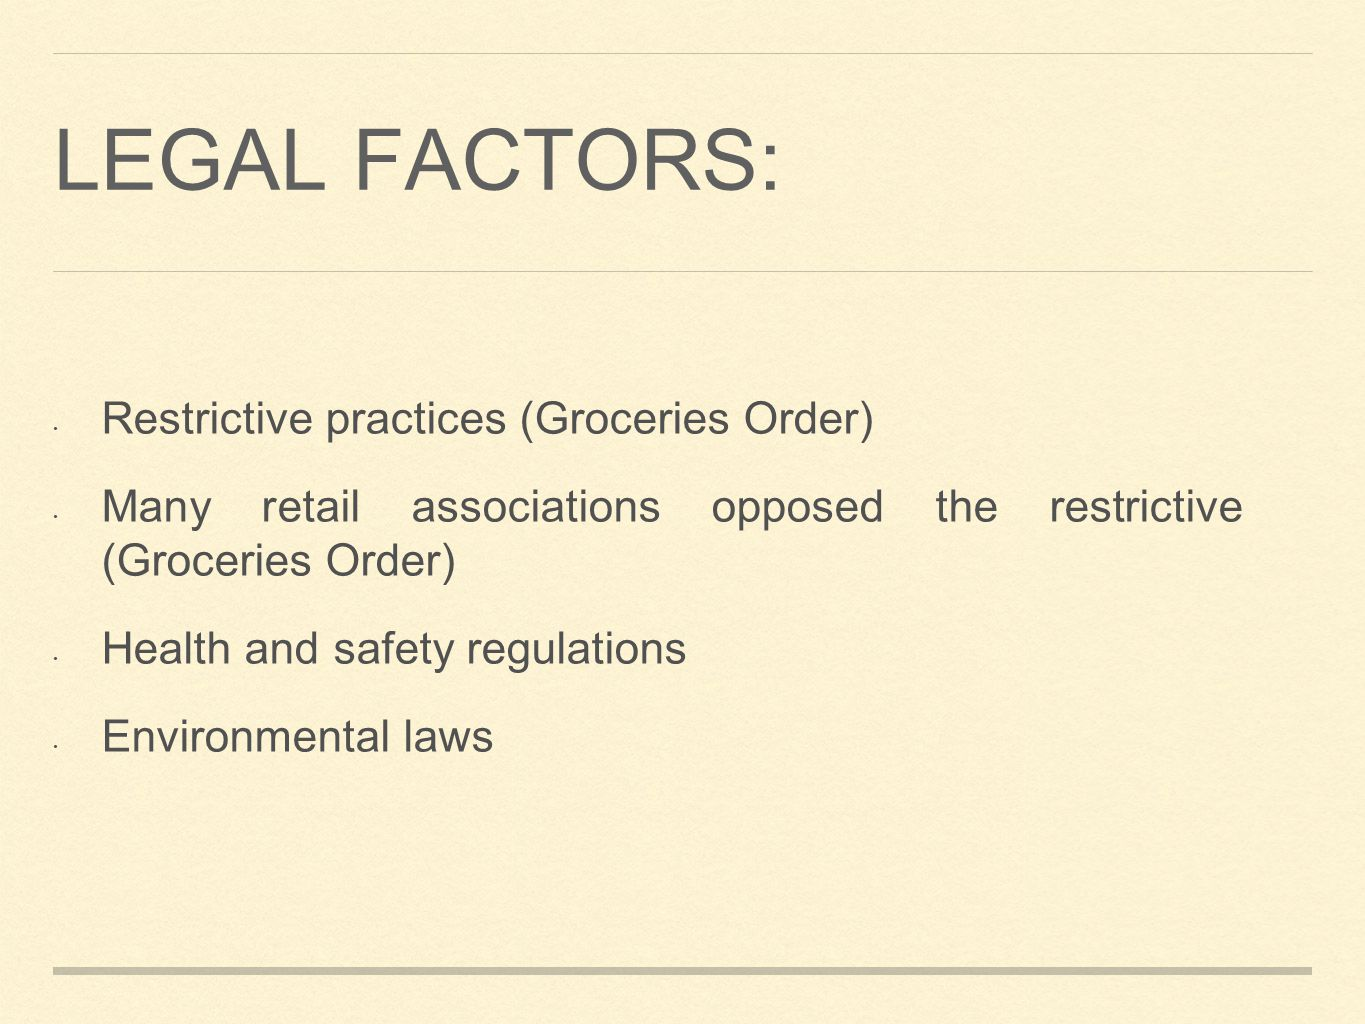 LEGAL FACTORS: Restrictive practices (Groceries Order) Many retail associations opposed the restrictive (Groceries Order) Health and safety regulations Environmental laws